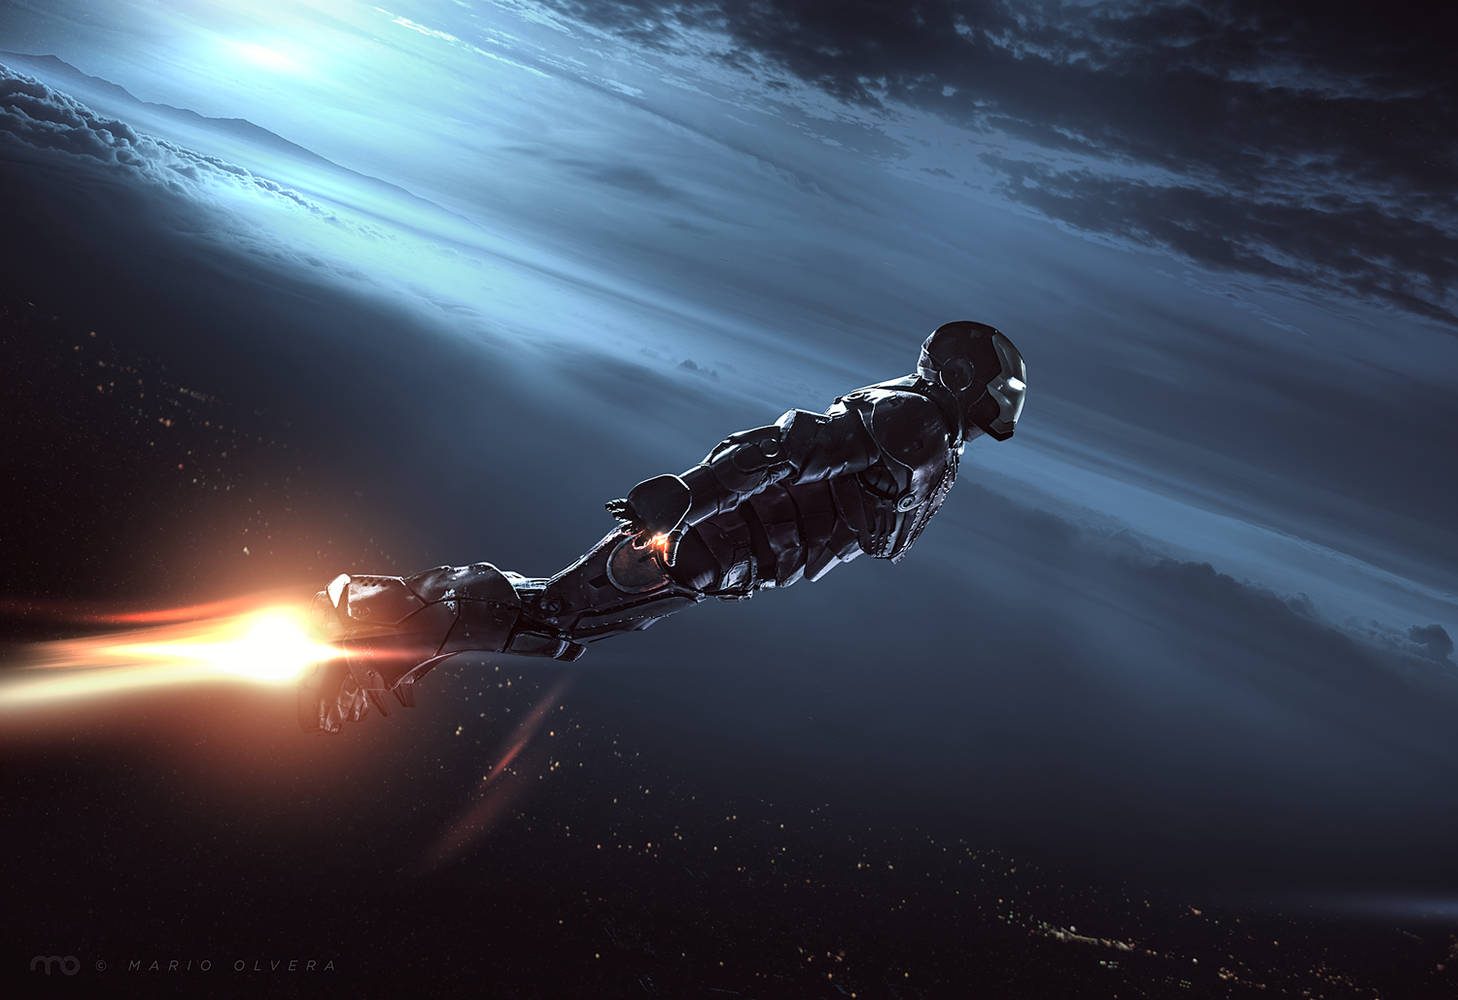 Jarvis, take me home...  by Mario Olvera